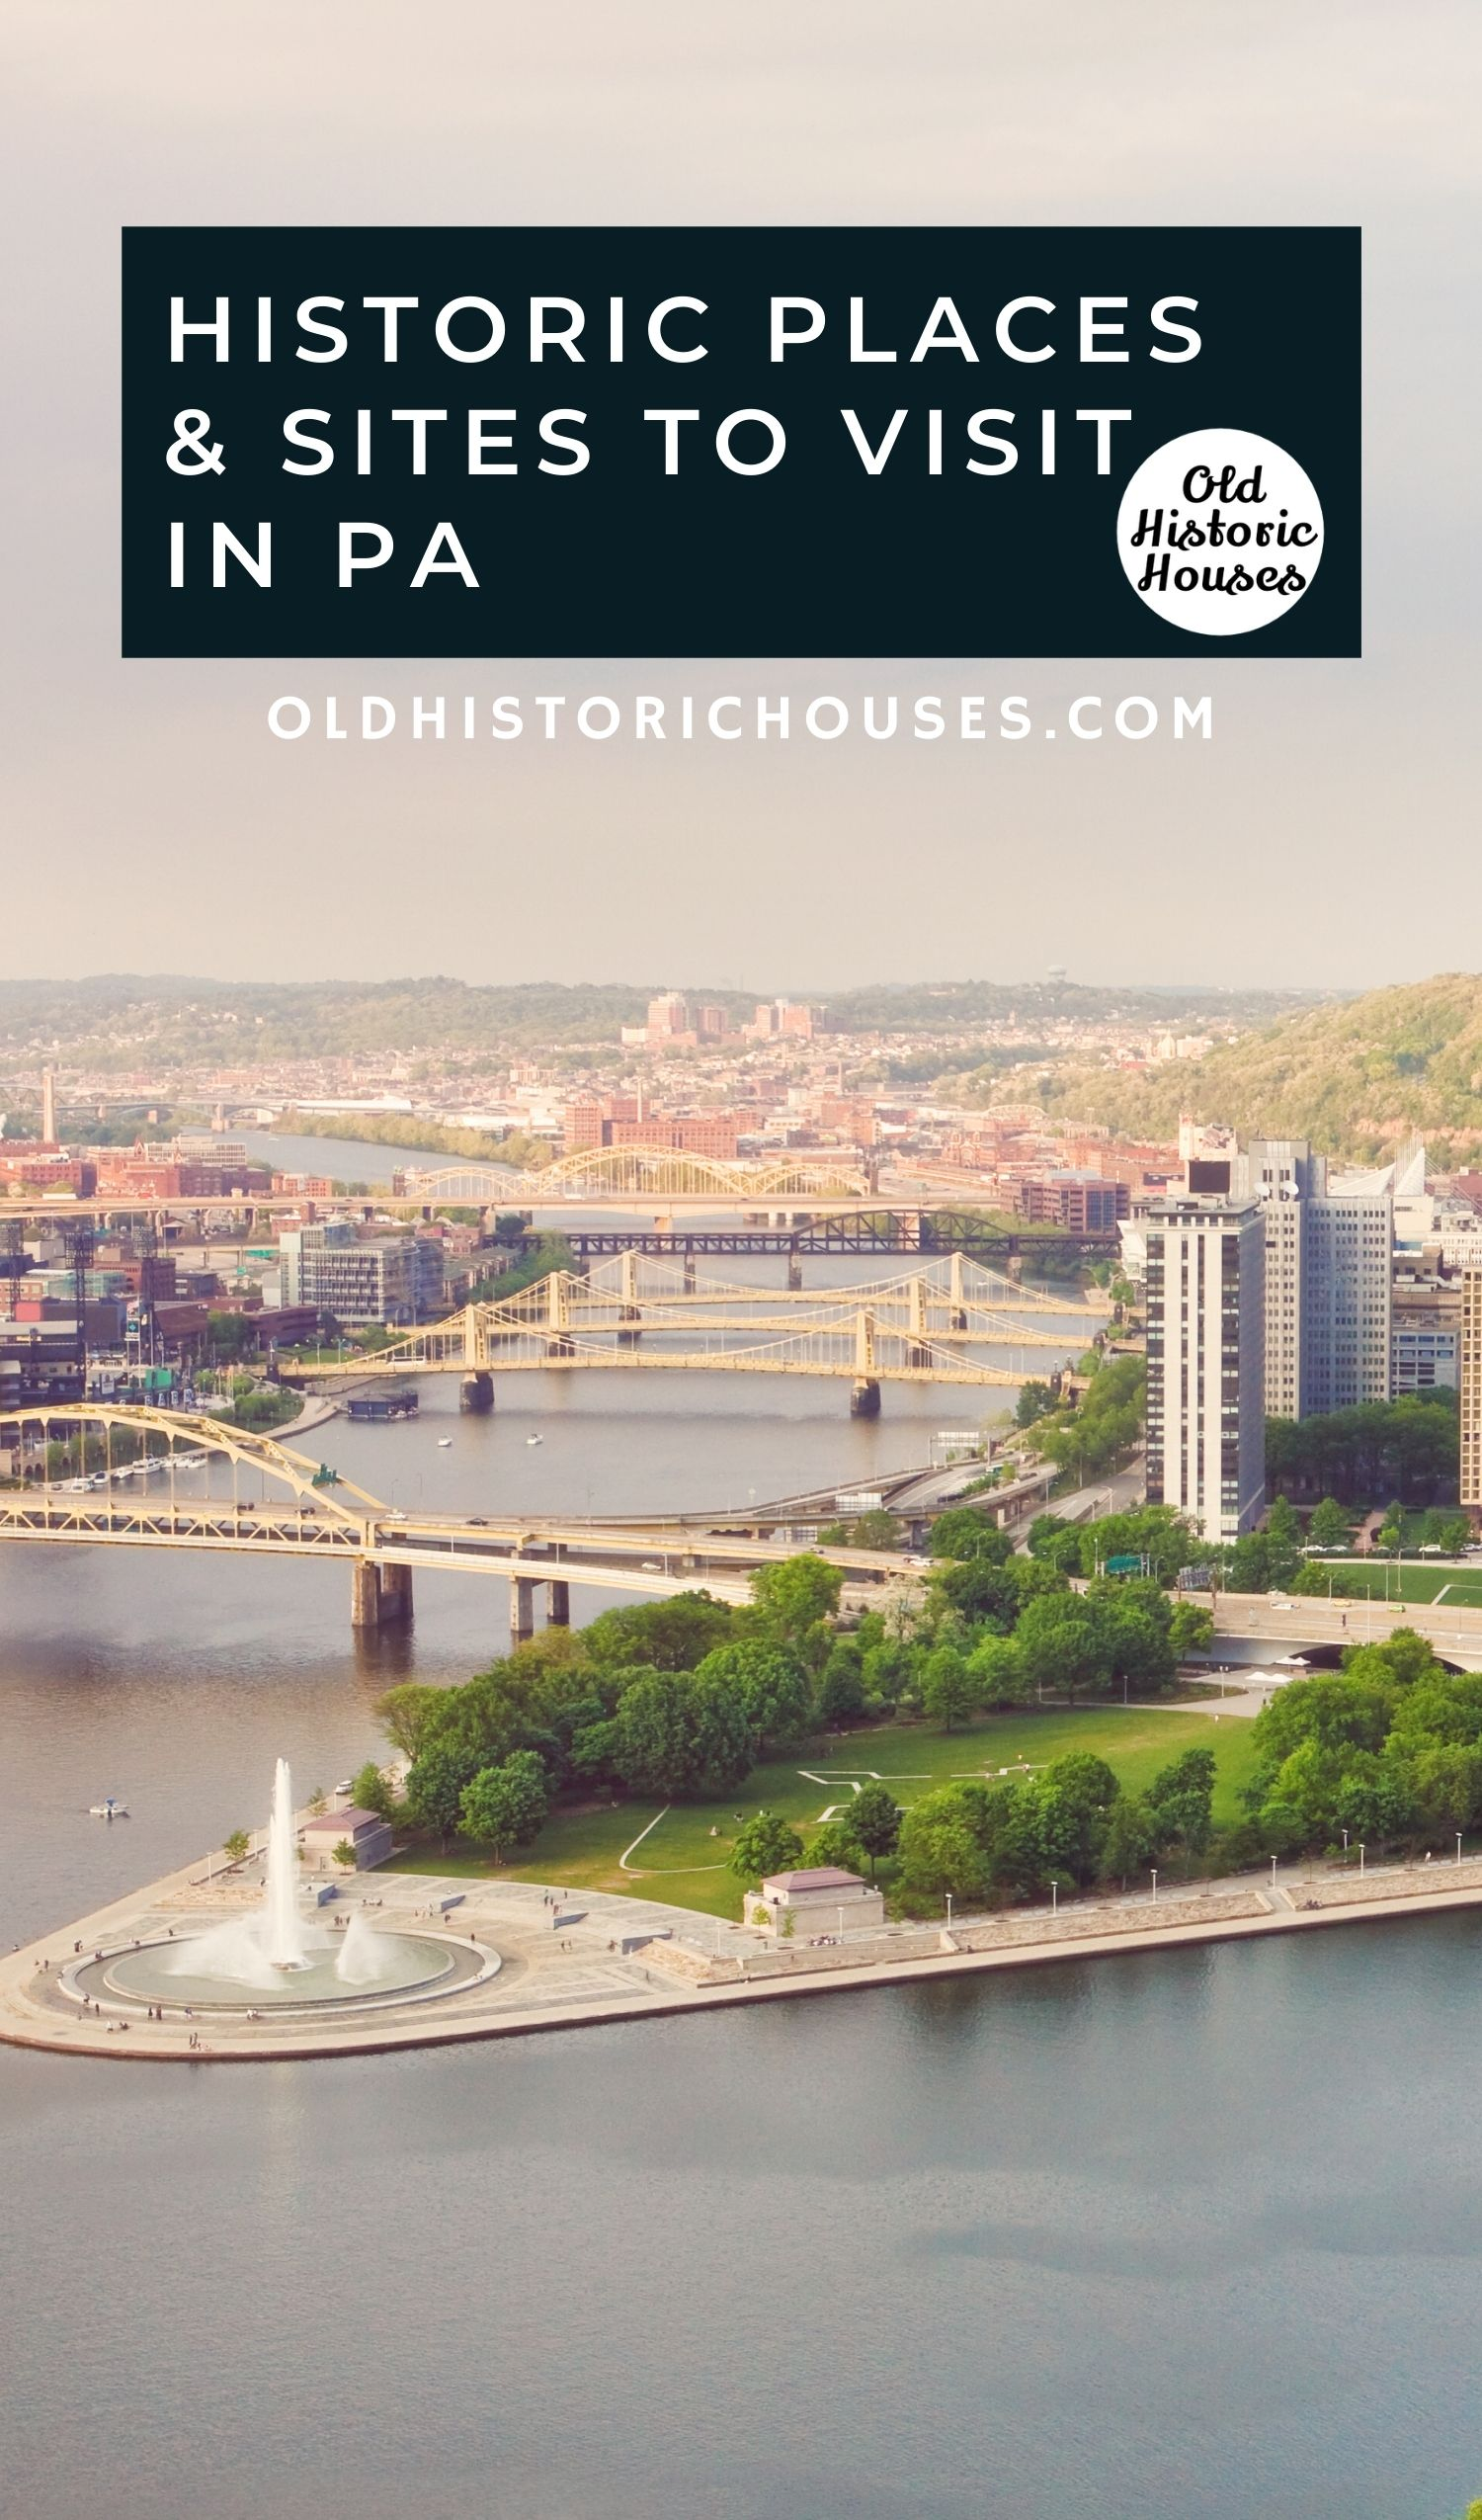 historic places and sites to visit in PA